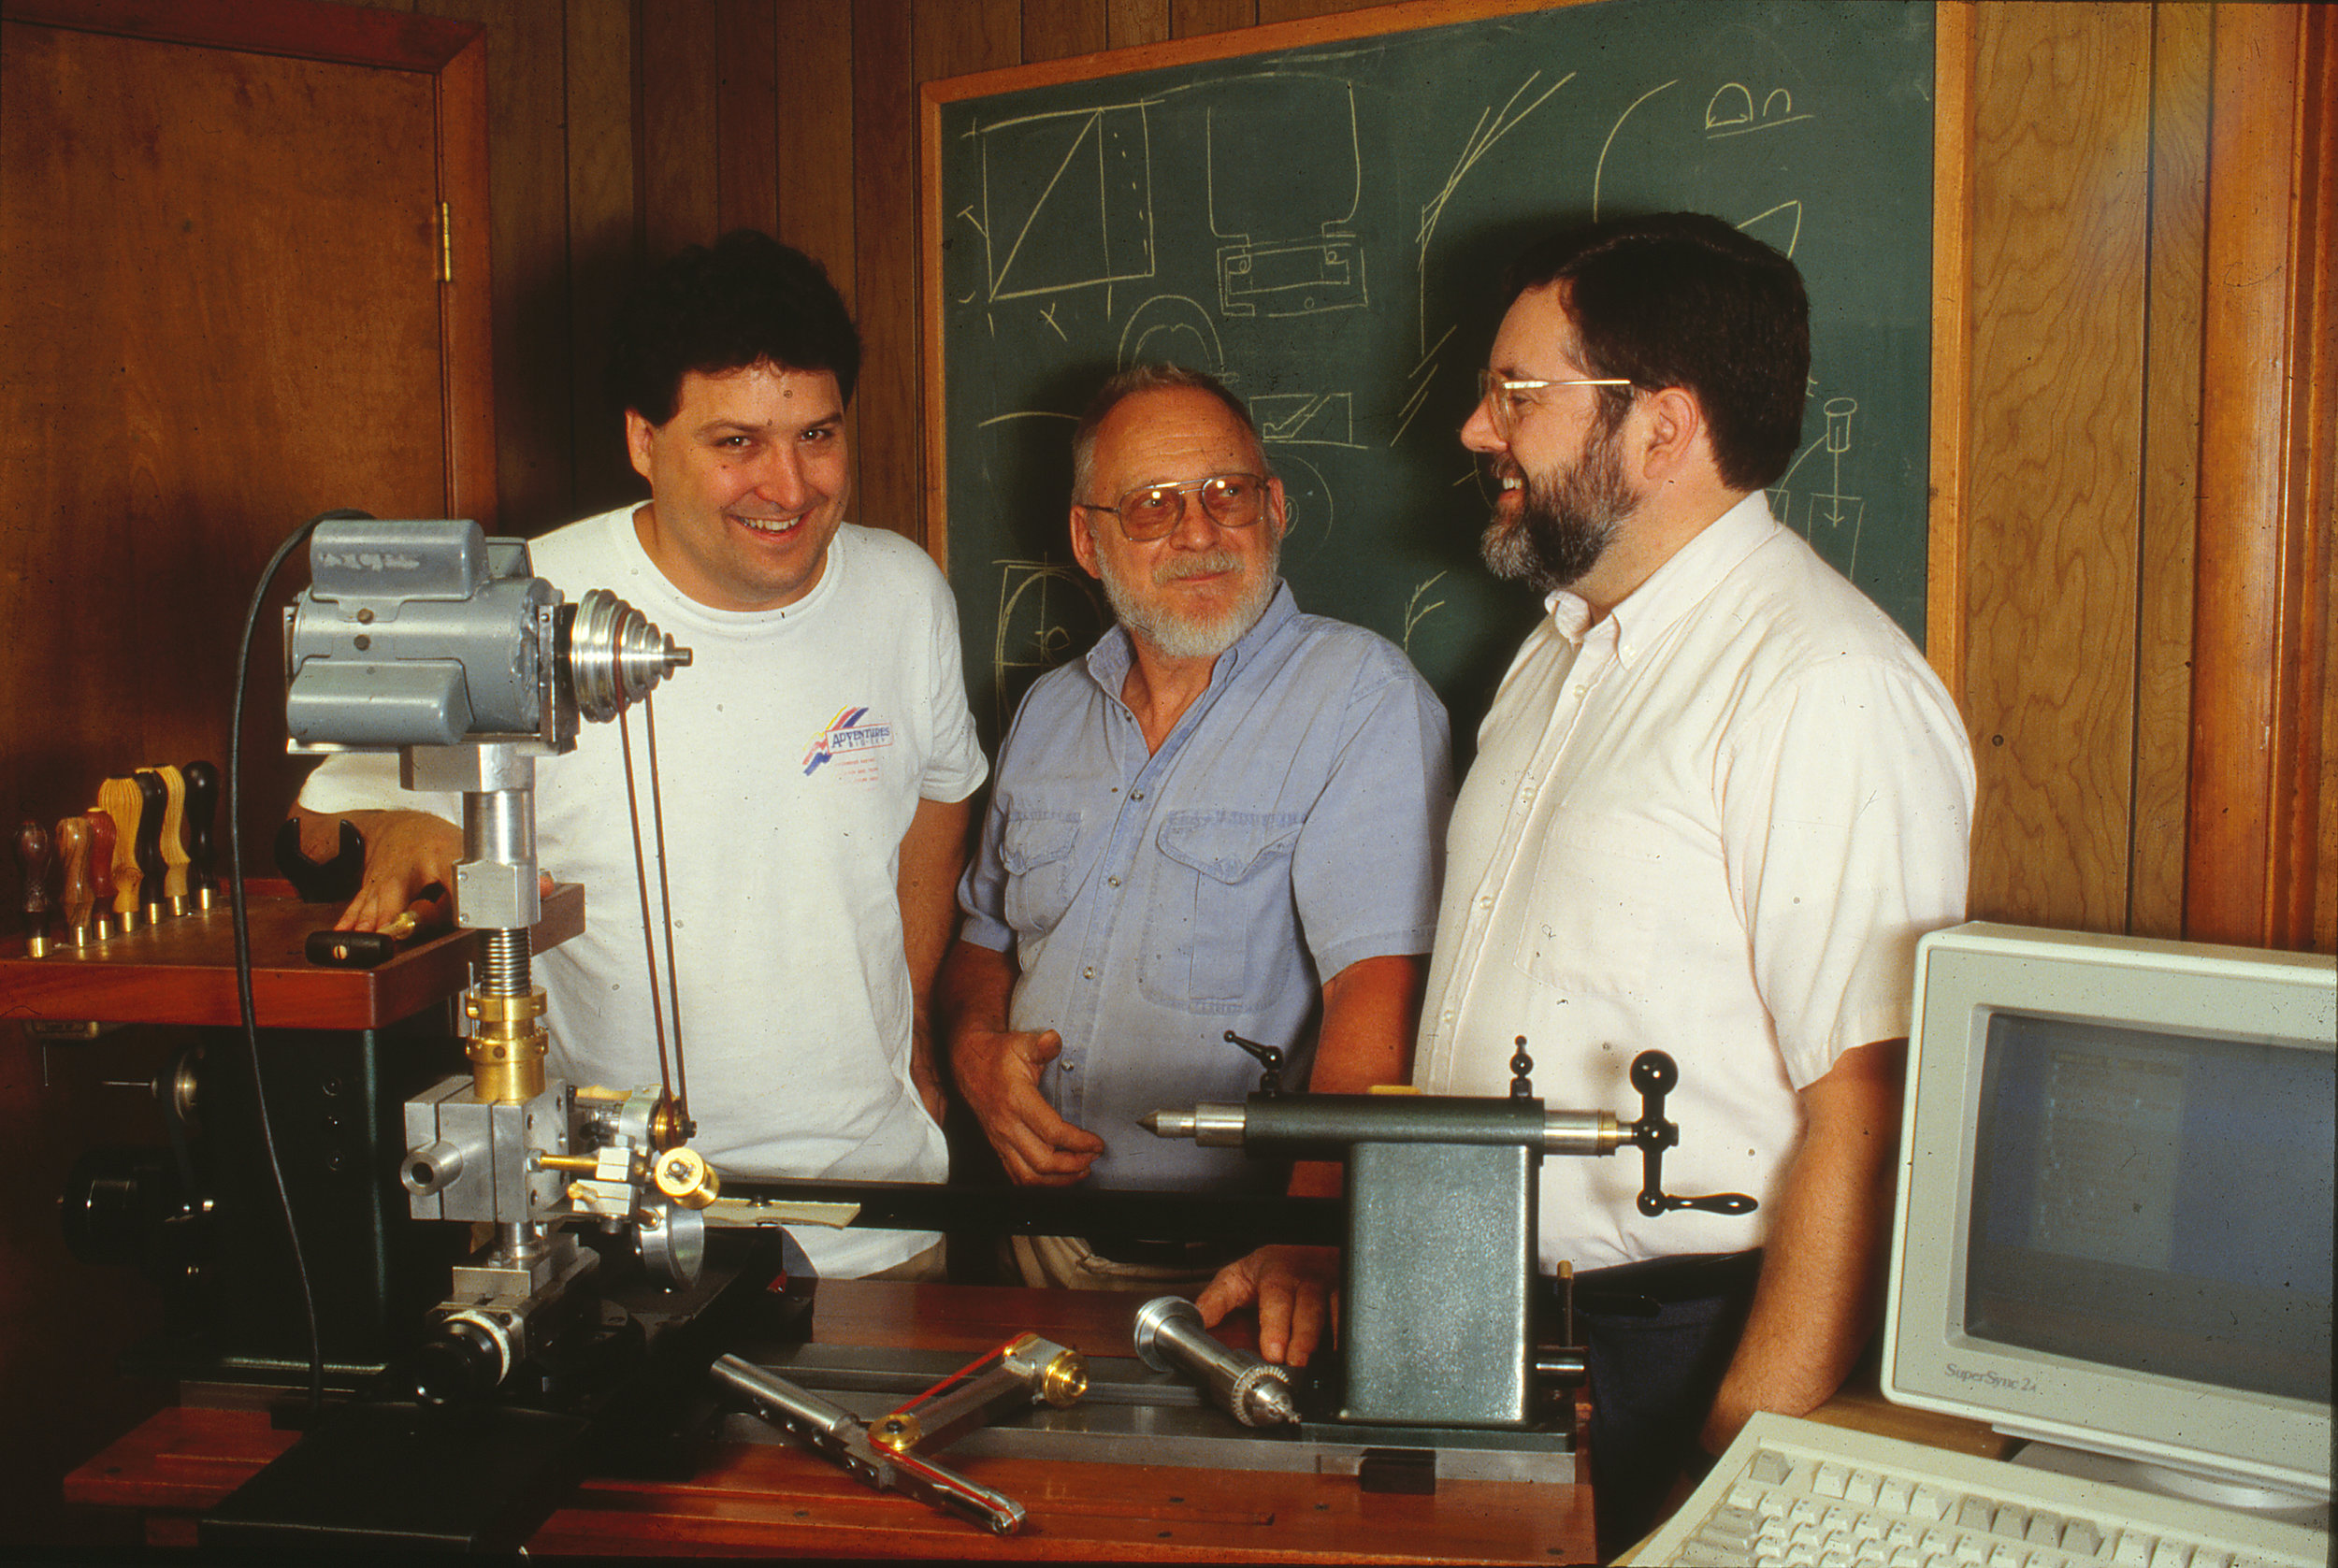 Fig. 25.  Mark Krick, Dave Hardy, and Ken Wurtzel with their HaWK Lathe, ca. 1993. Photo: Mark Krick